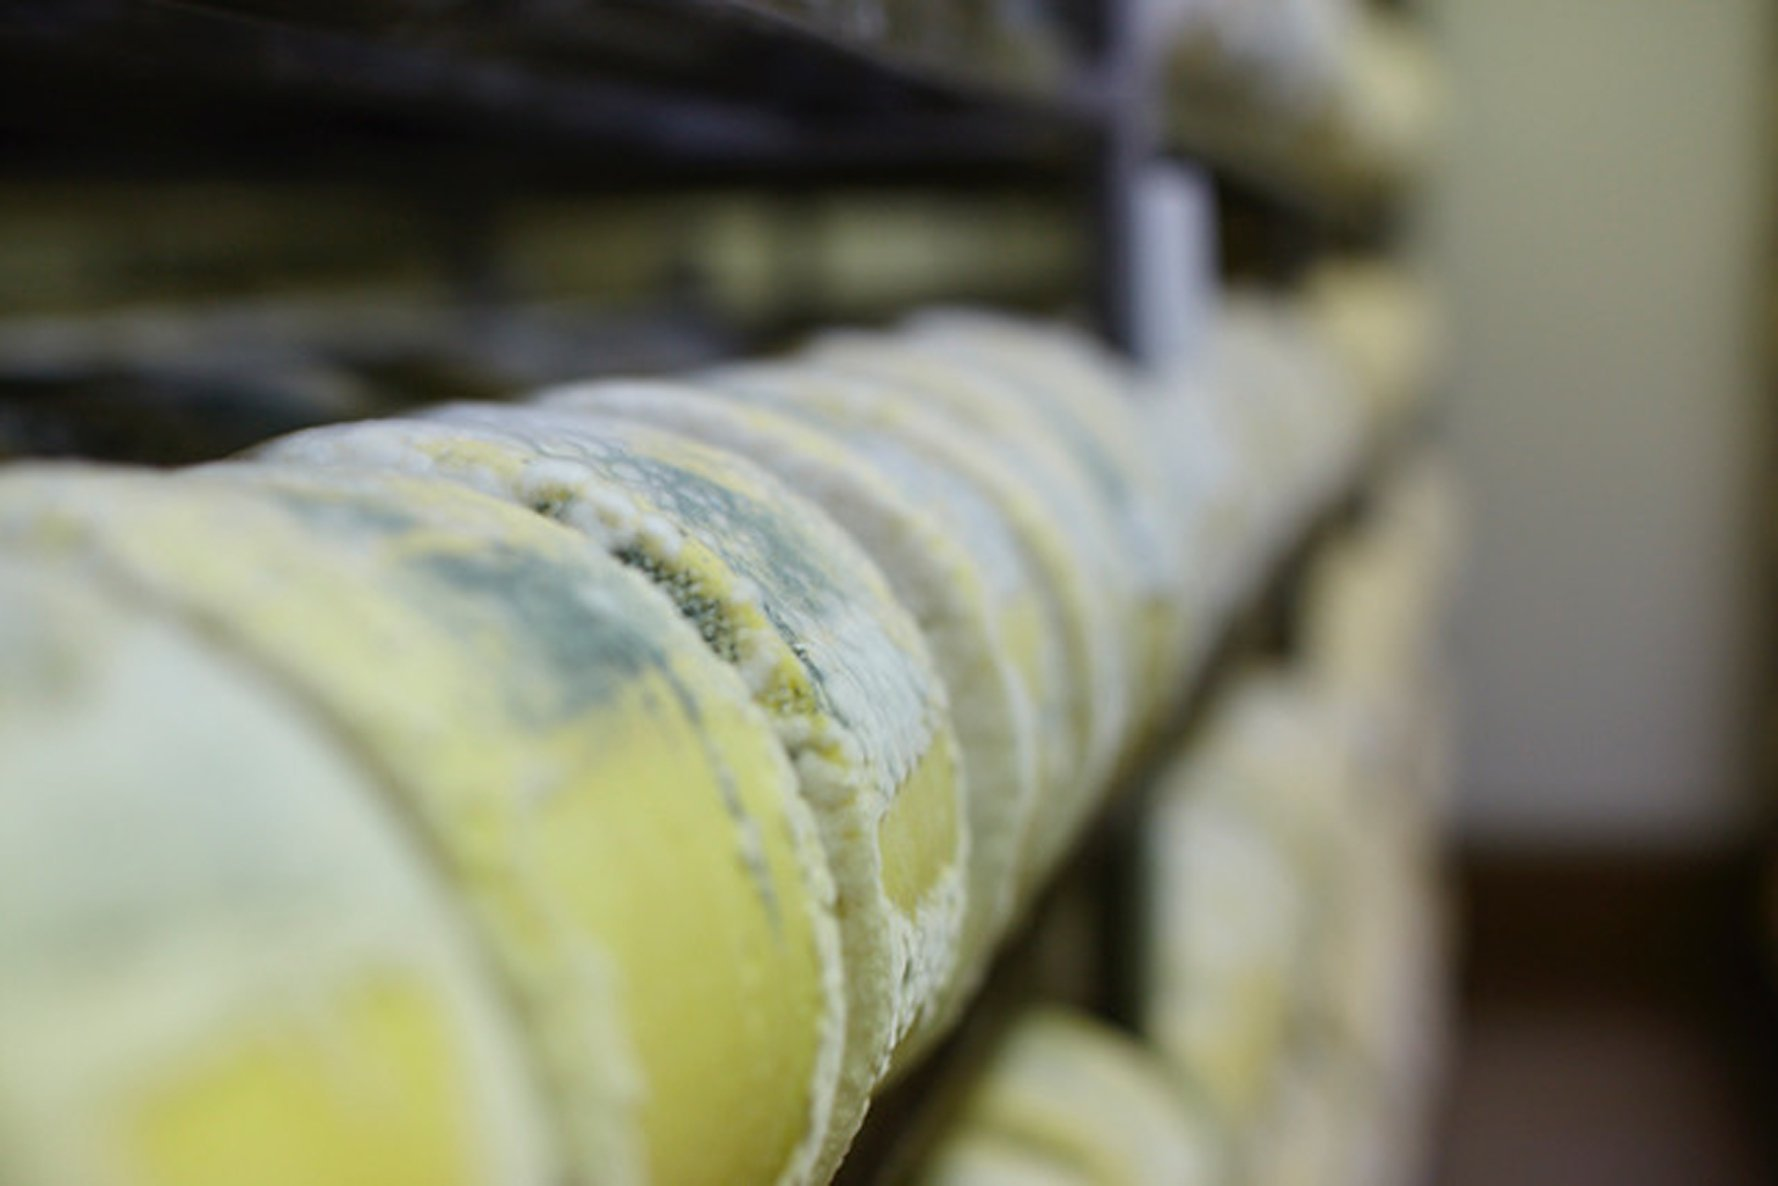 Blue cheeses maturing at the Whitestone Cheese factory in Oamaru.